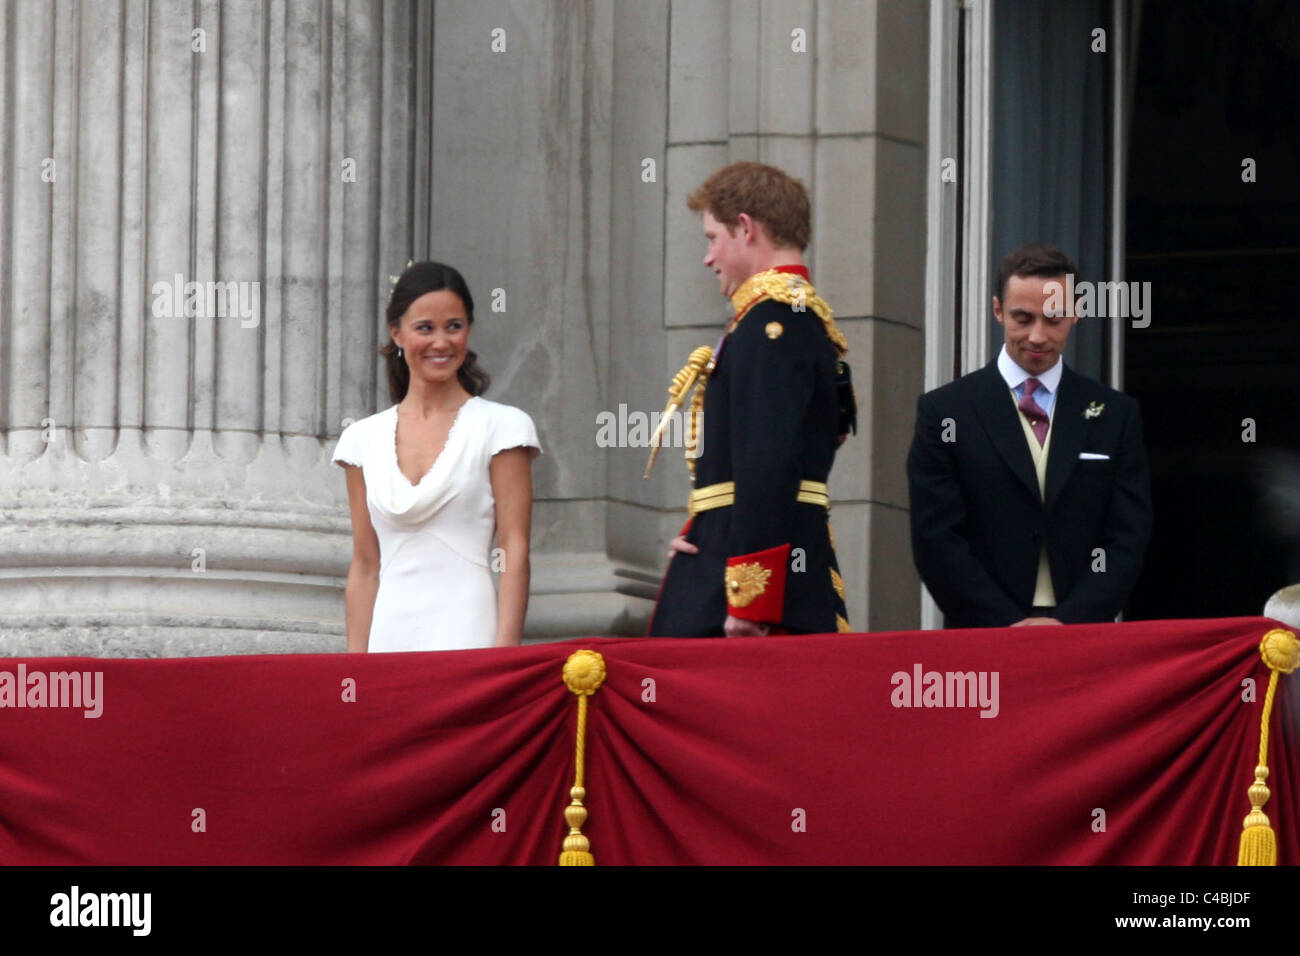 Kate William Wedding Pippa Harry Stockfotos & Kate William ...